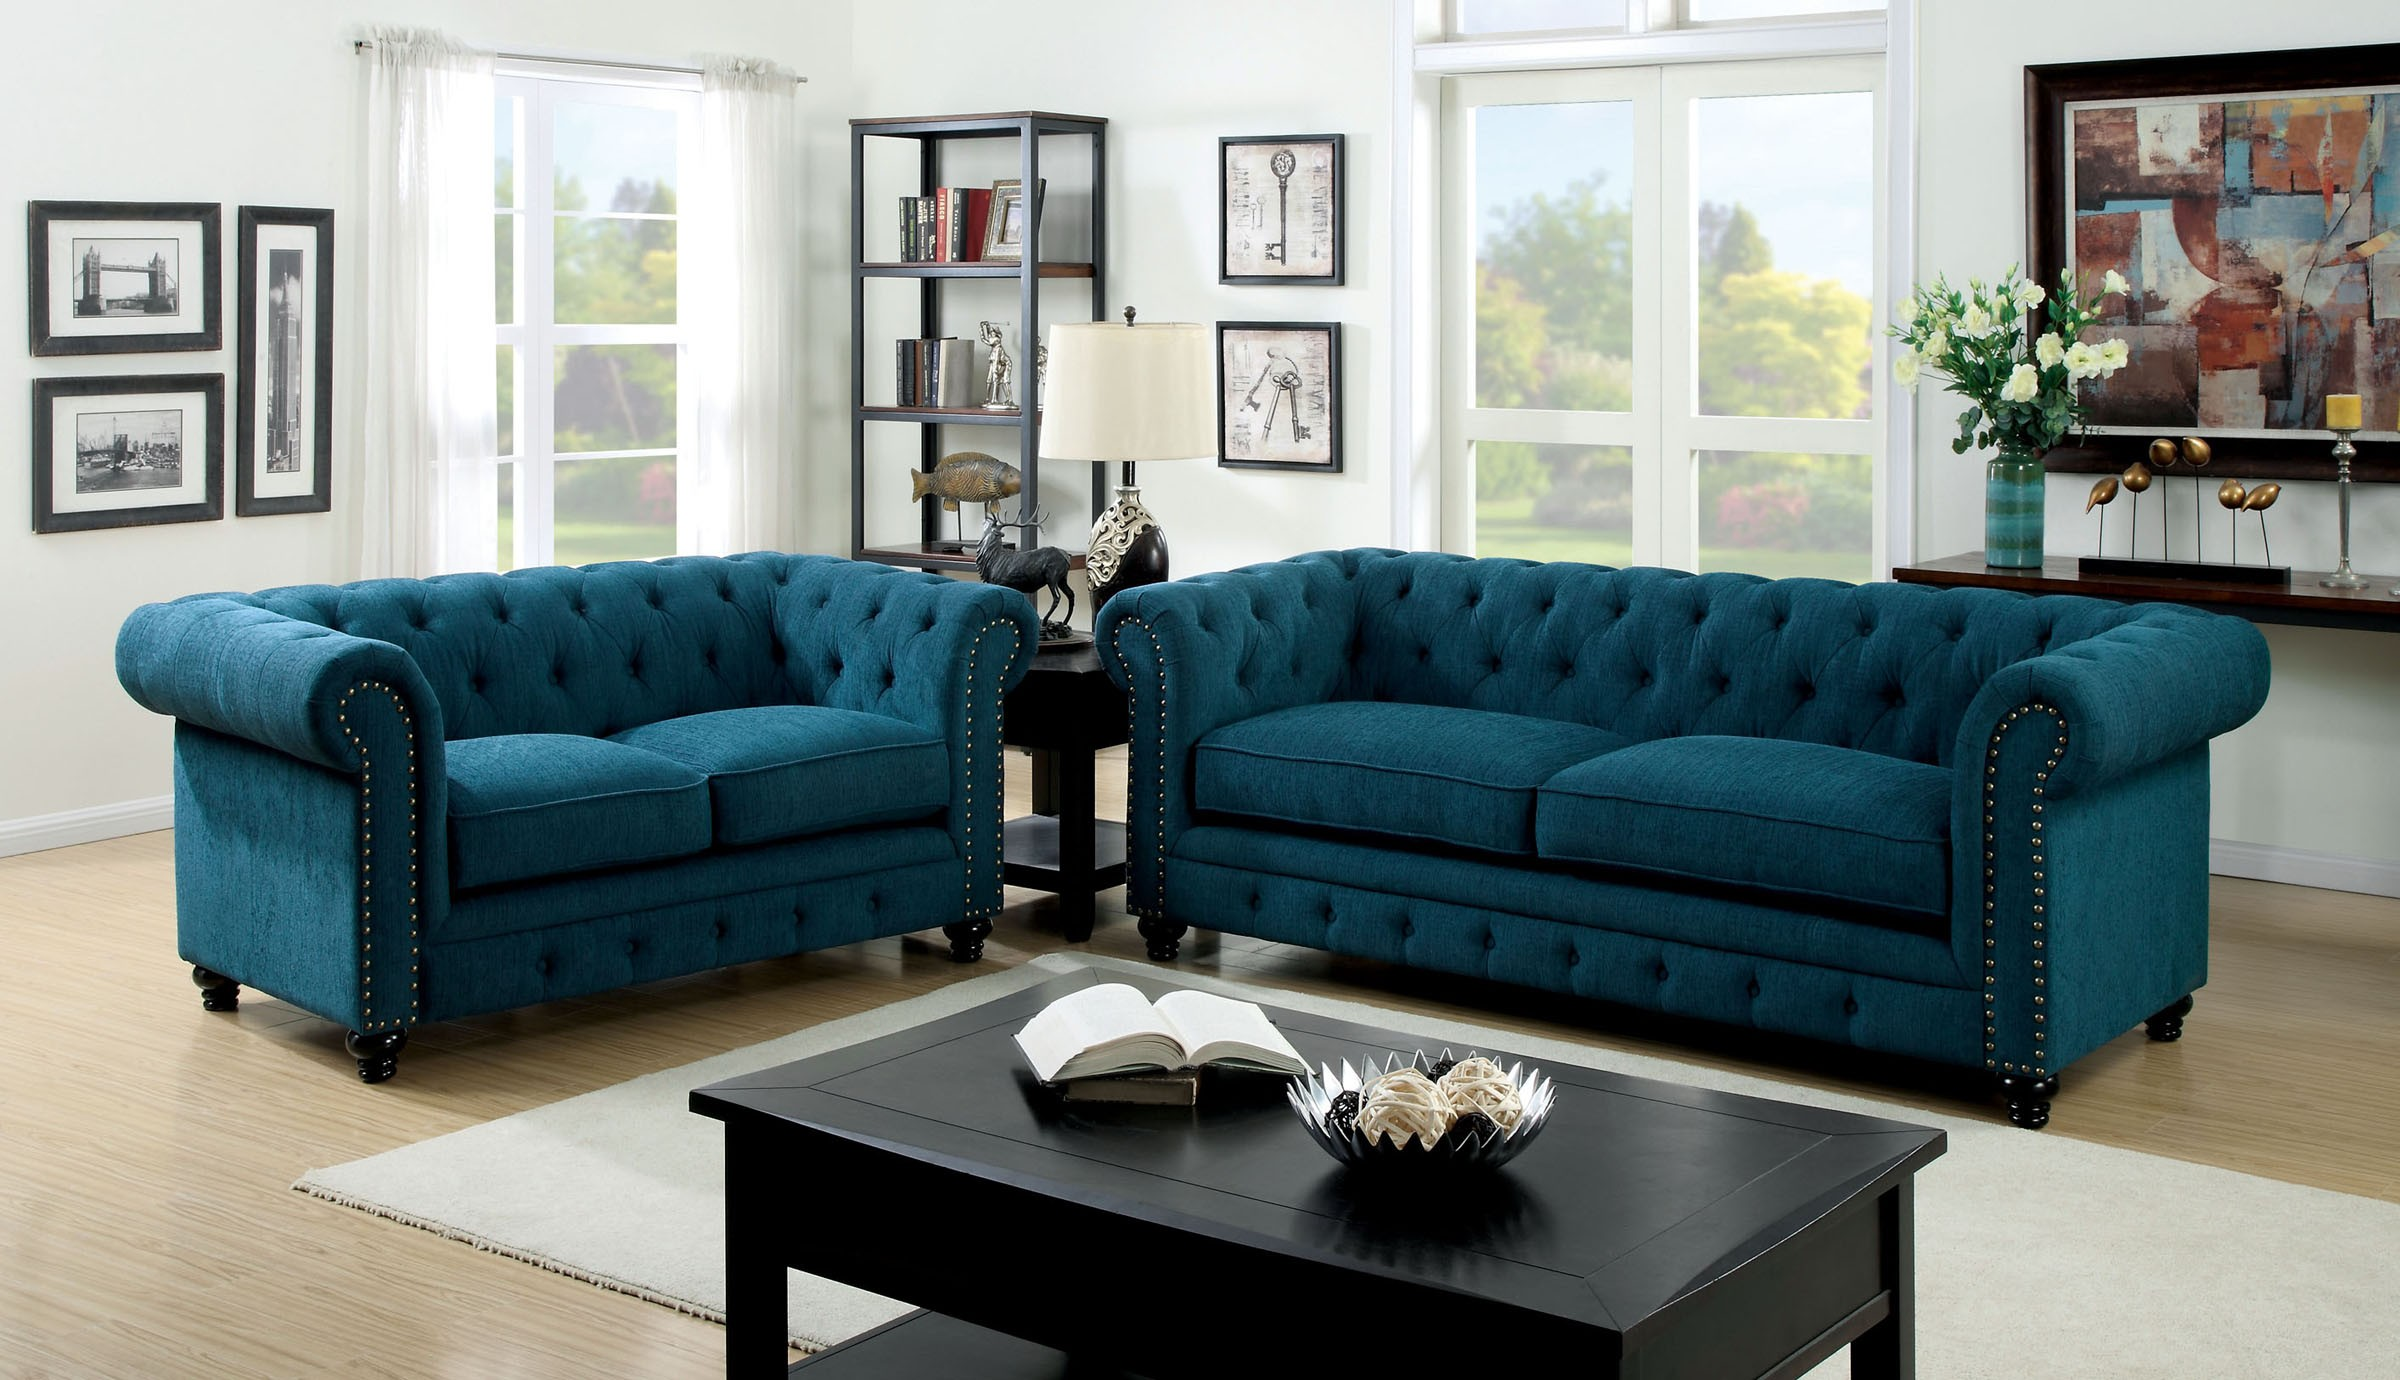 Stanford dark teal fabric living room set from furniture for Front room furniture sets